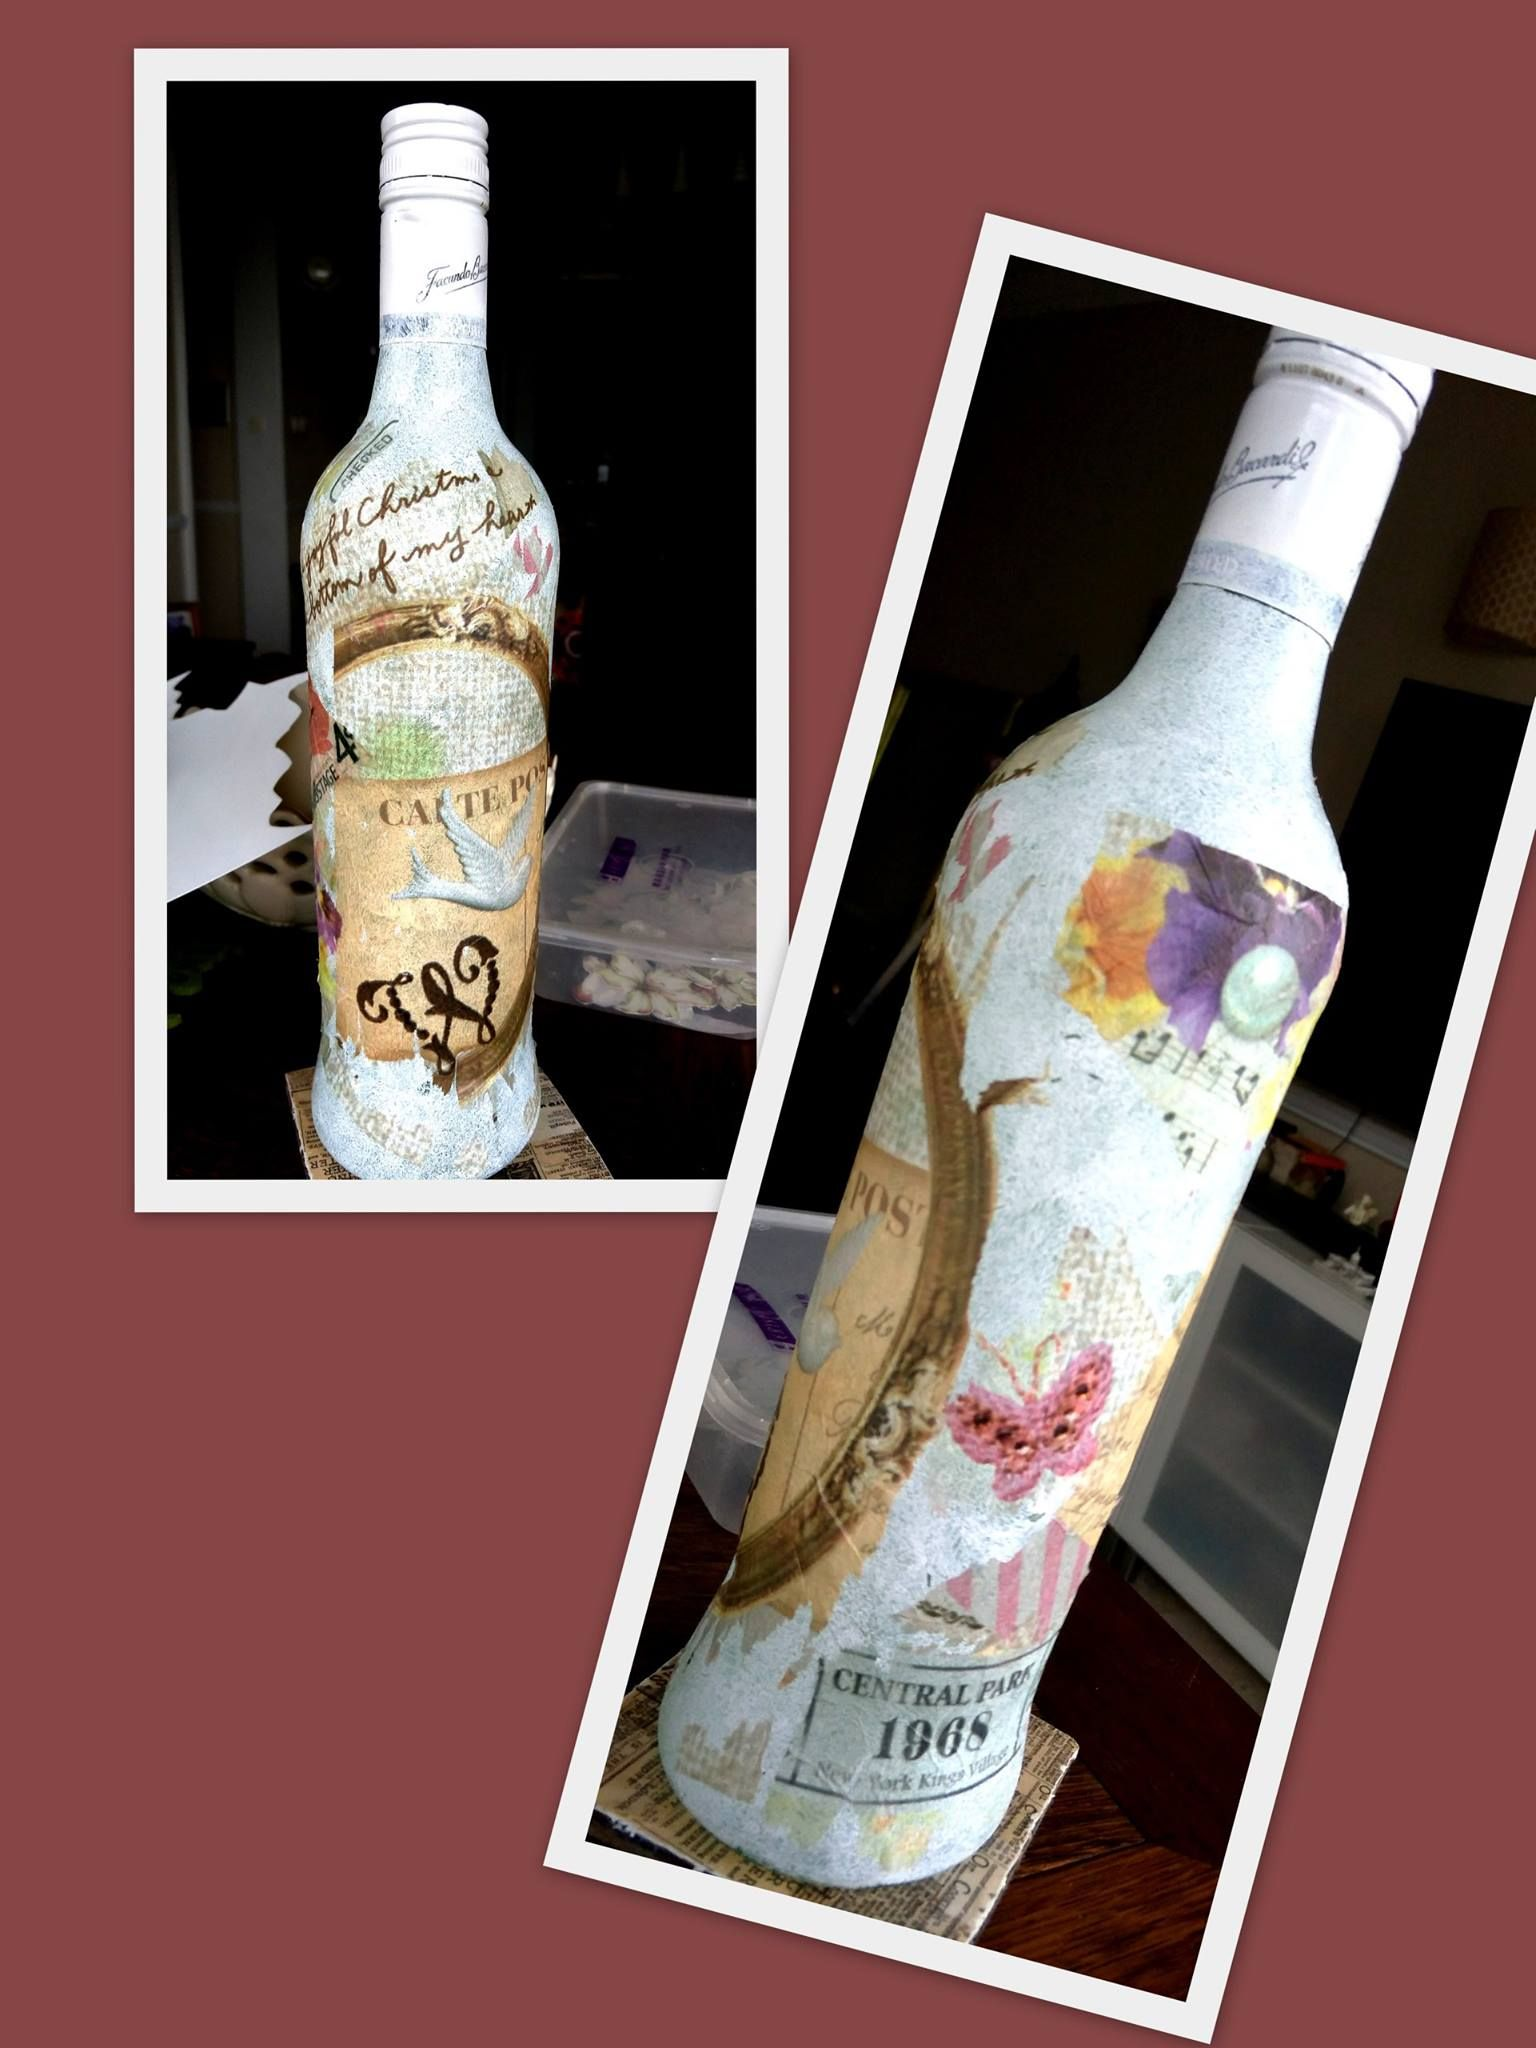 Recycled Upcycled Bottle A Bottle Gets A Makeover With Decoupage Paper Base Of Primer Blended Colours And V Decoupage Paper Handmade Gifts Decoupage